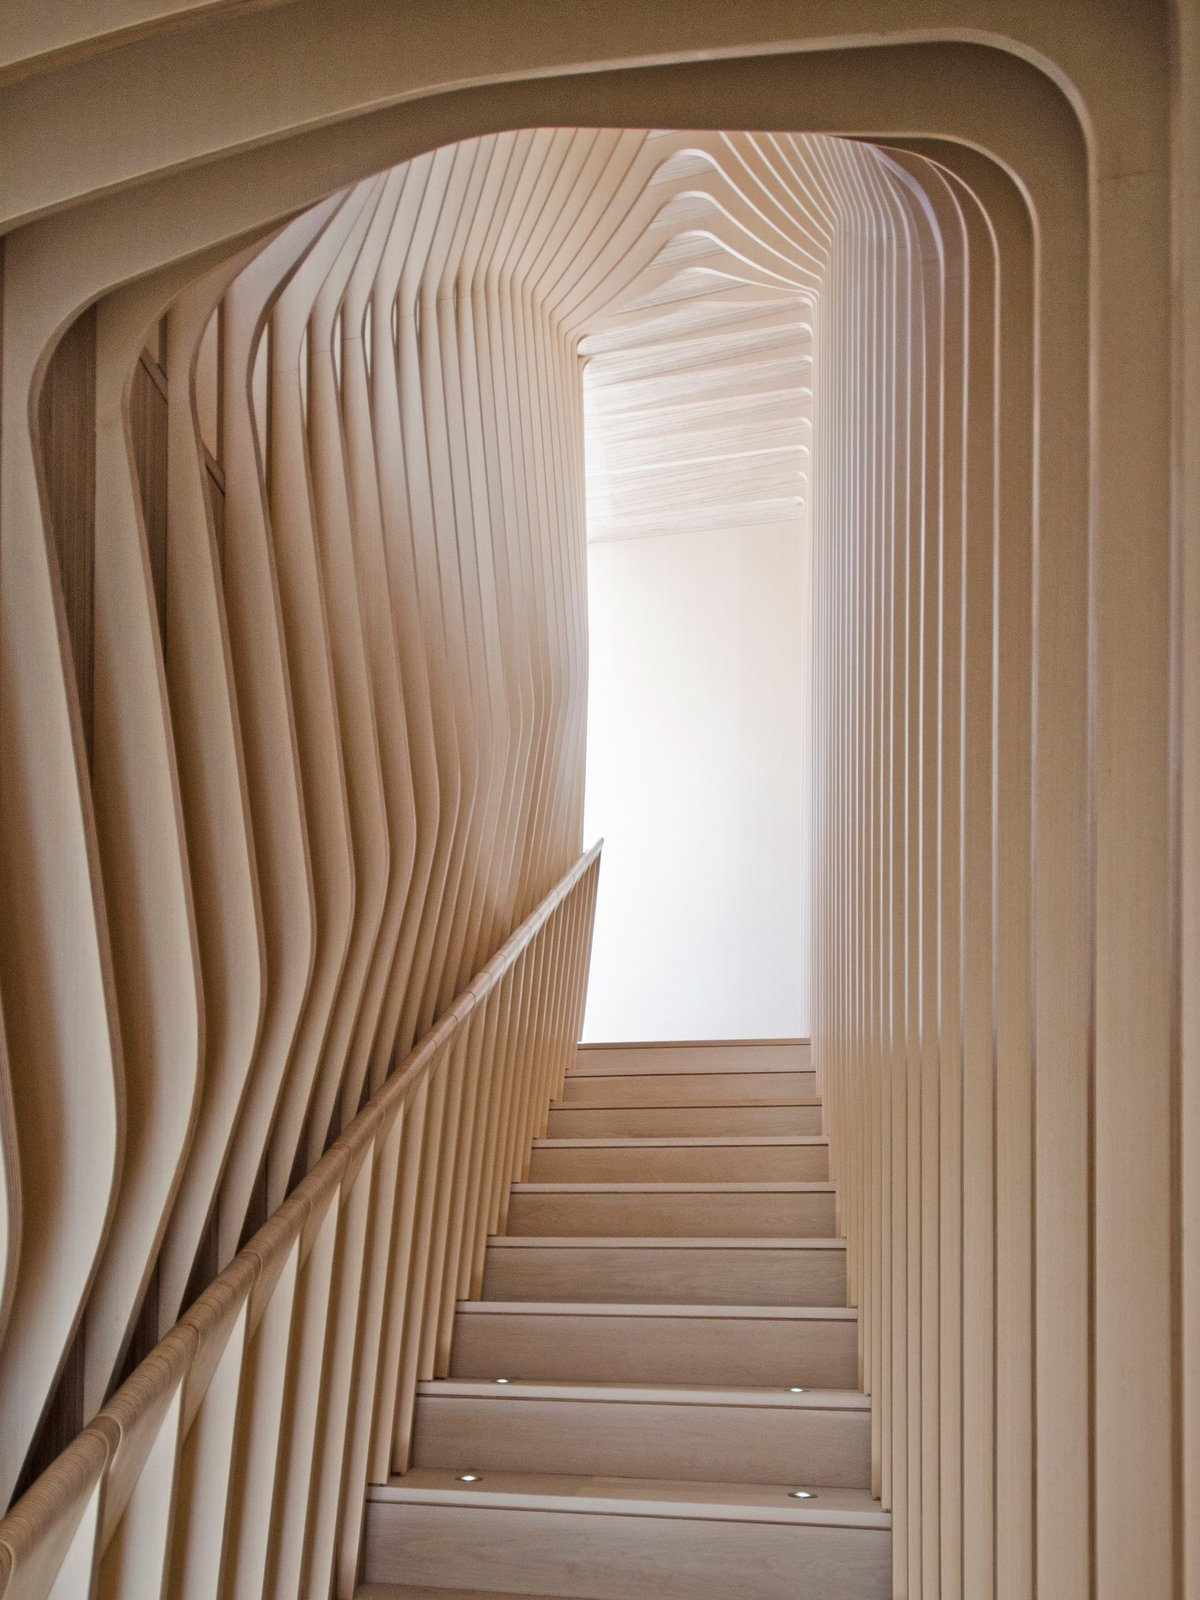 Staircase, Wood Tread, and Wood Railing Though they give the appearance of bent plywood, each curved layer of the ribbed corridor was constructed with flat, laminated cutouts, including the rounded hand rail.  Best Photos from What's the Twist Behind This Home's Sinuous Staircase? Ordinary Plywood